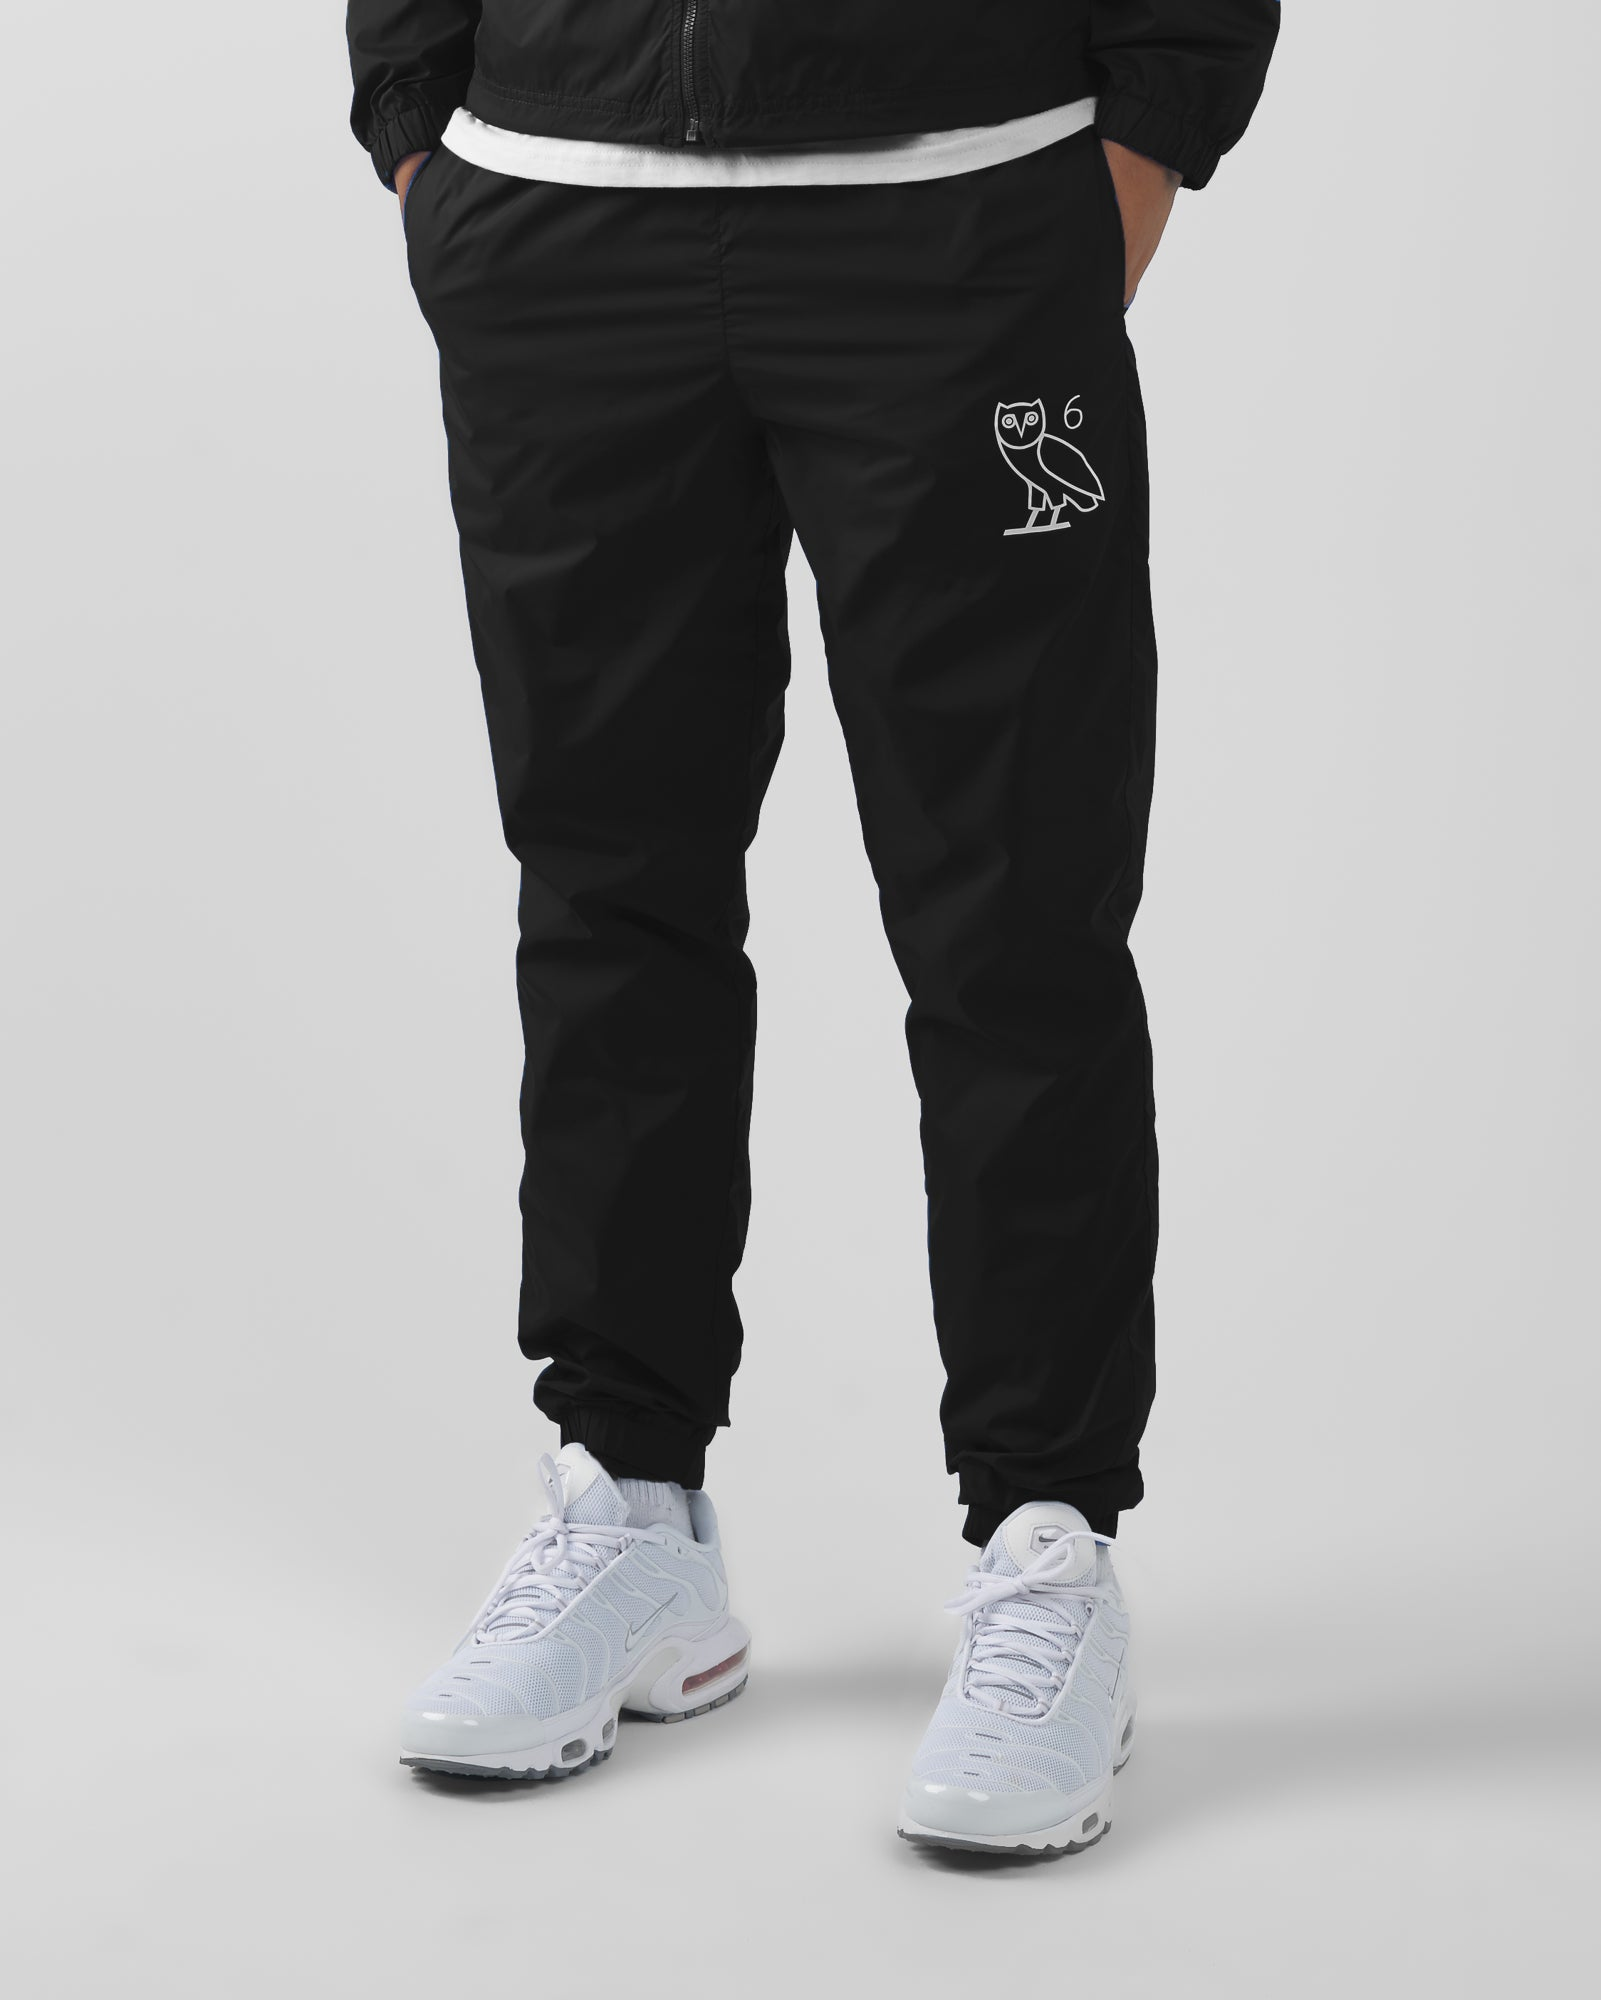 6 OWL PACKABLE TRACK PANT - BLACK IMAGE #4